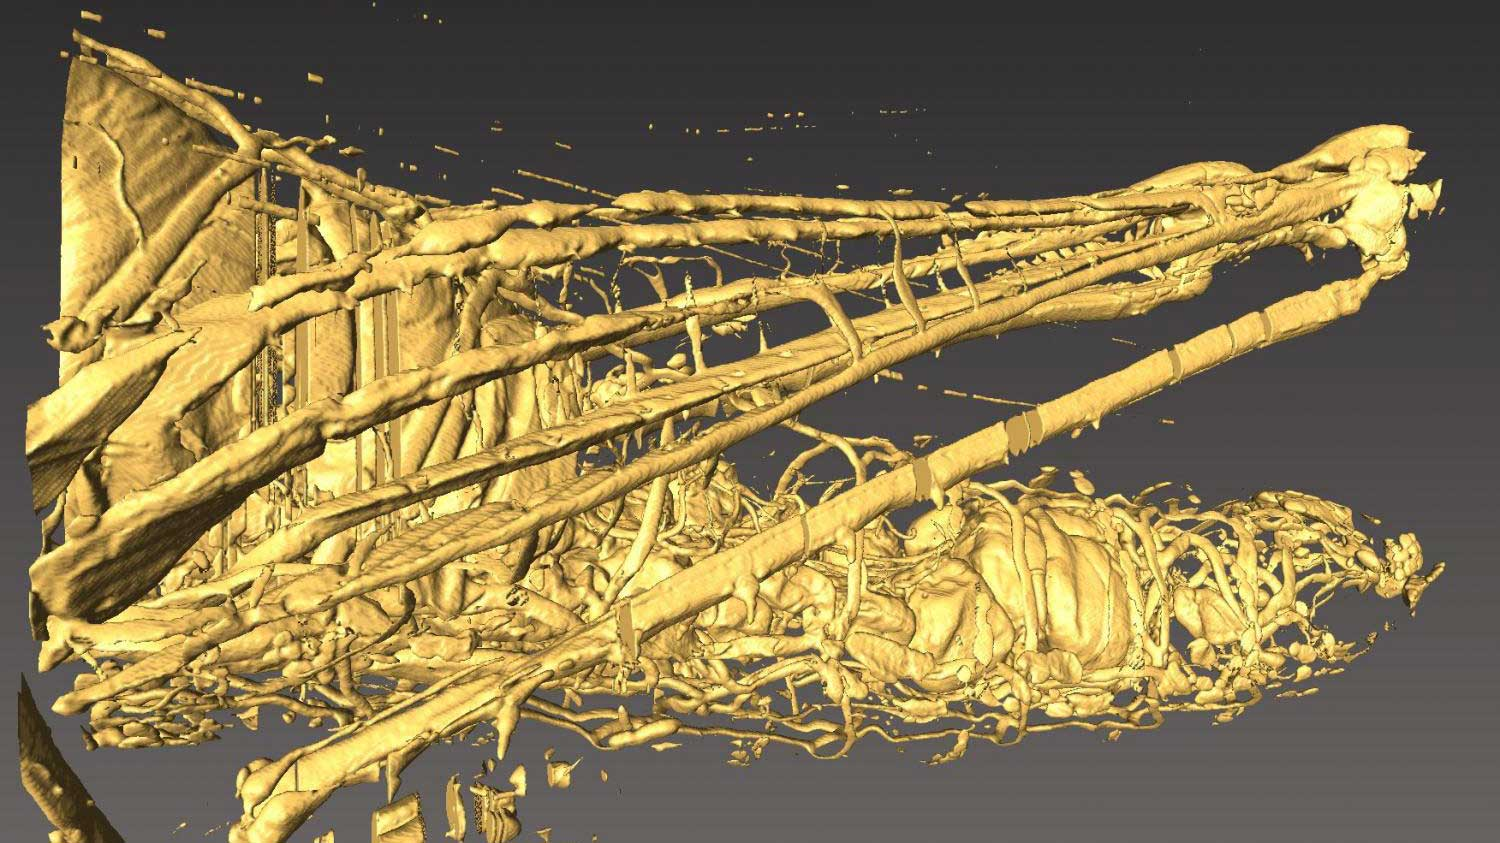 A 3-D microtomographic image of a grasshopper in a head-down position. The inflated air sacs in the abdomen are visible. The tomography was performed at Virginia Tech.